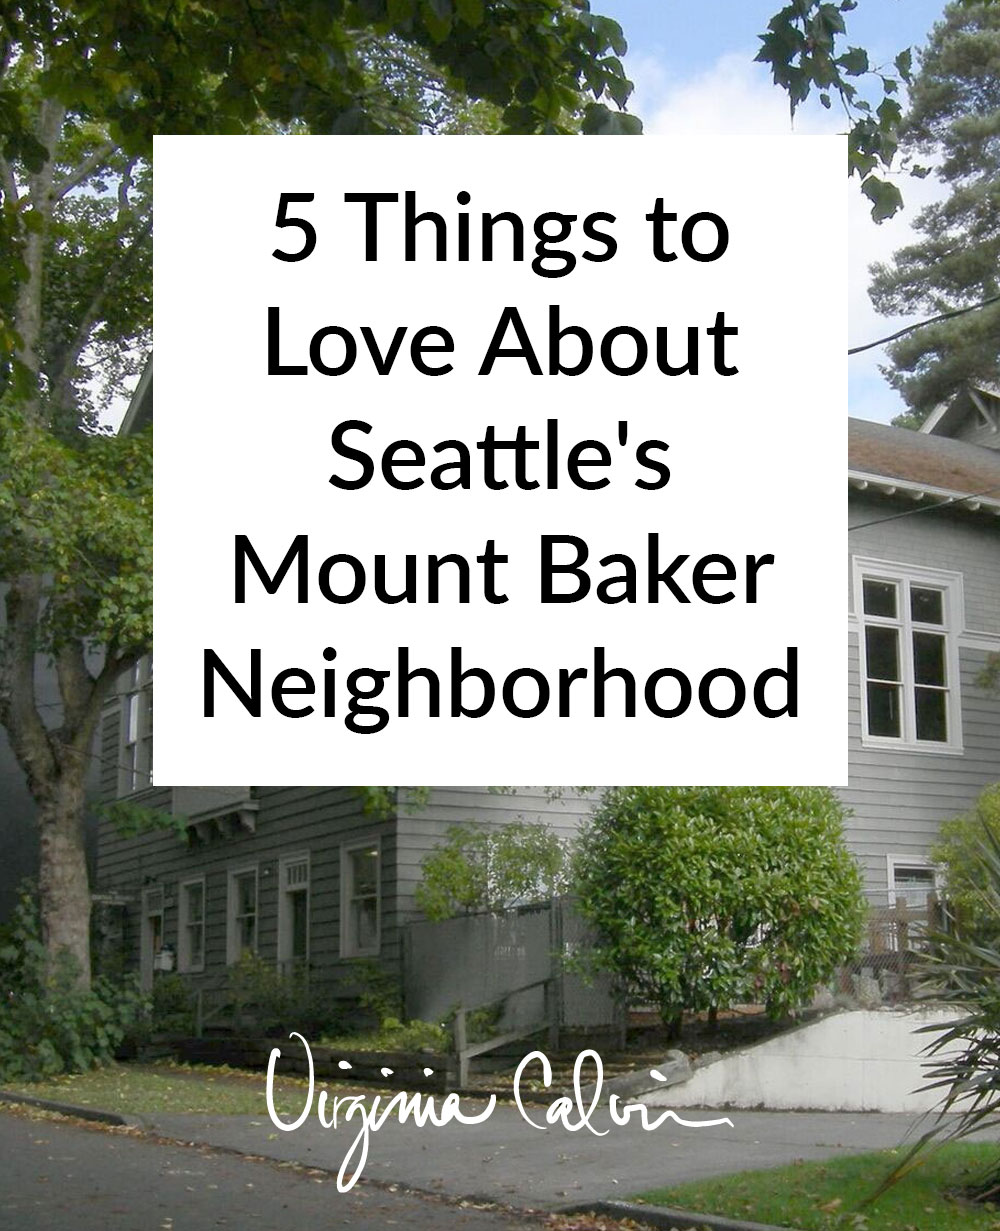 5 Things to Love About Seattle's Mount Baker Neighborhood | Virginia Calvin | Seattle Real Estate